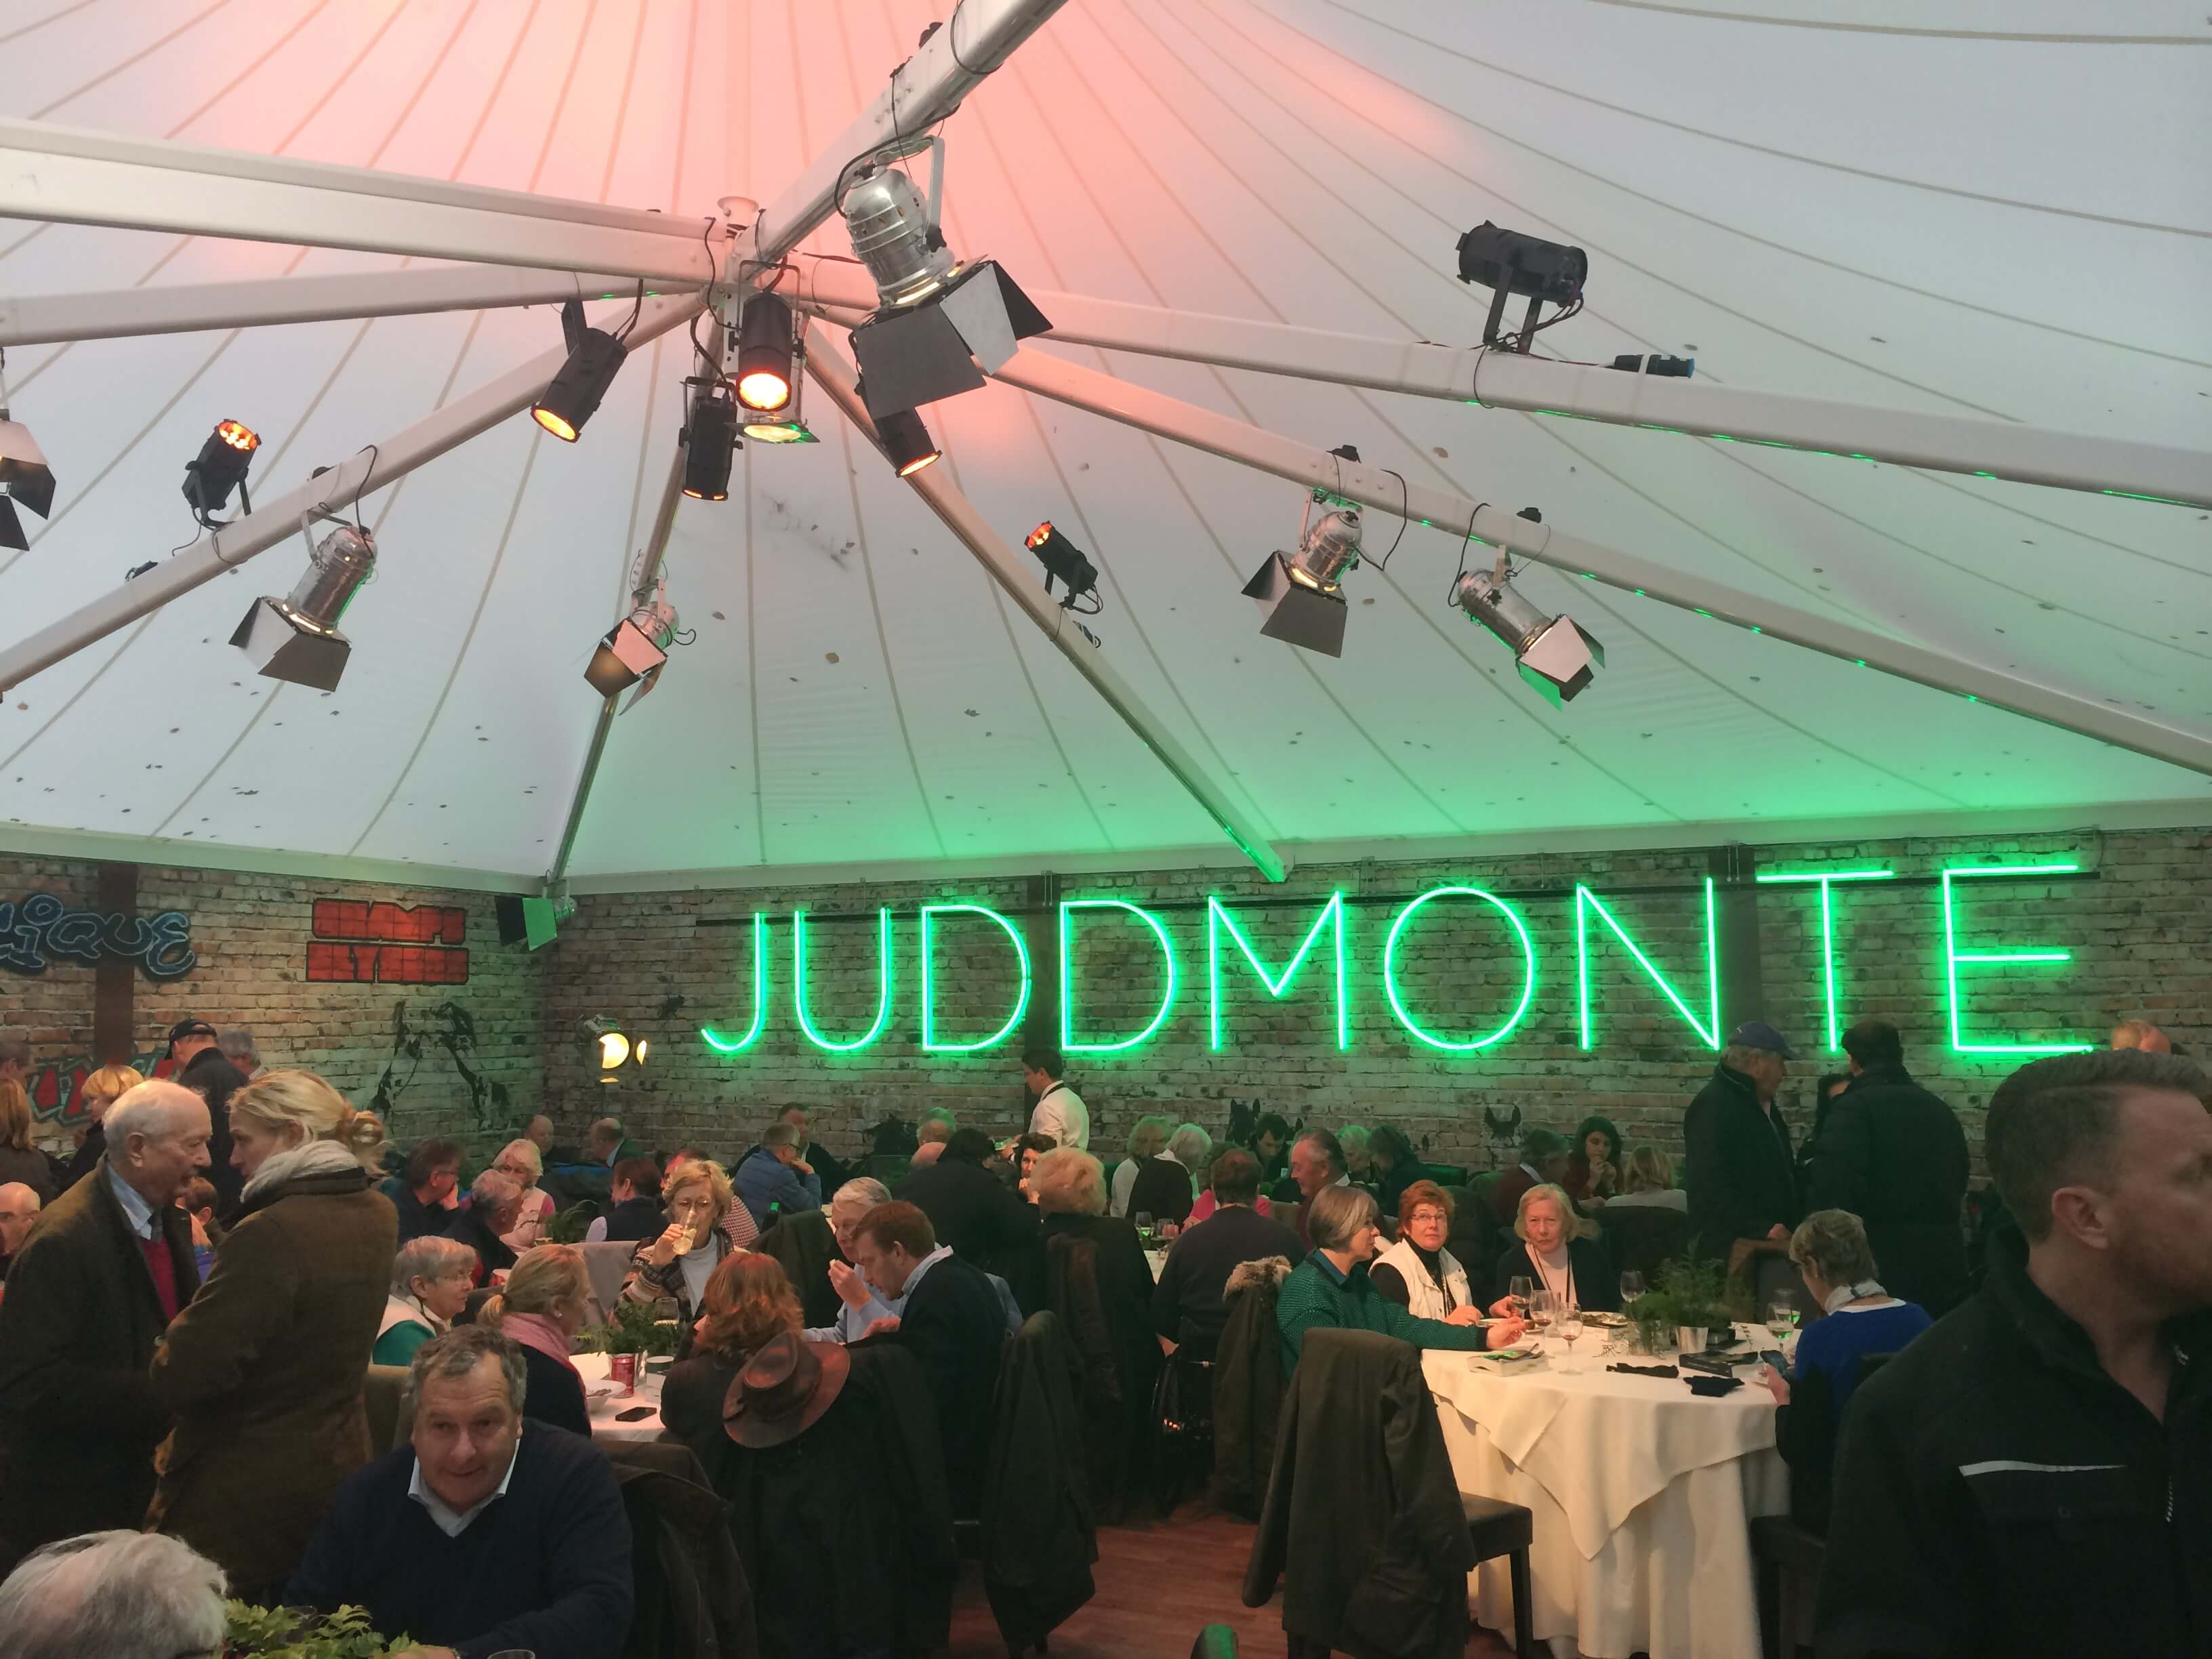 Great use of the structure wall in the Juddmonte structure - Temporary Event Structures – The Inside Story